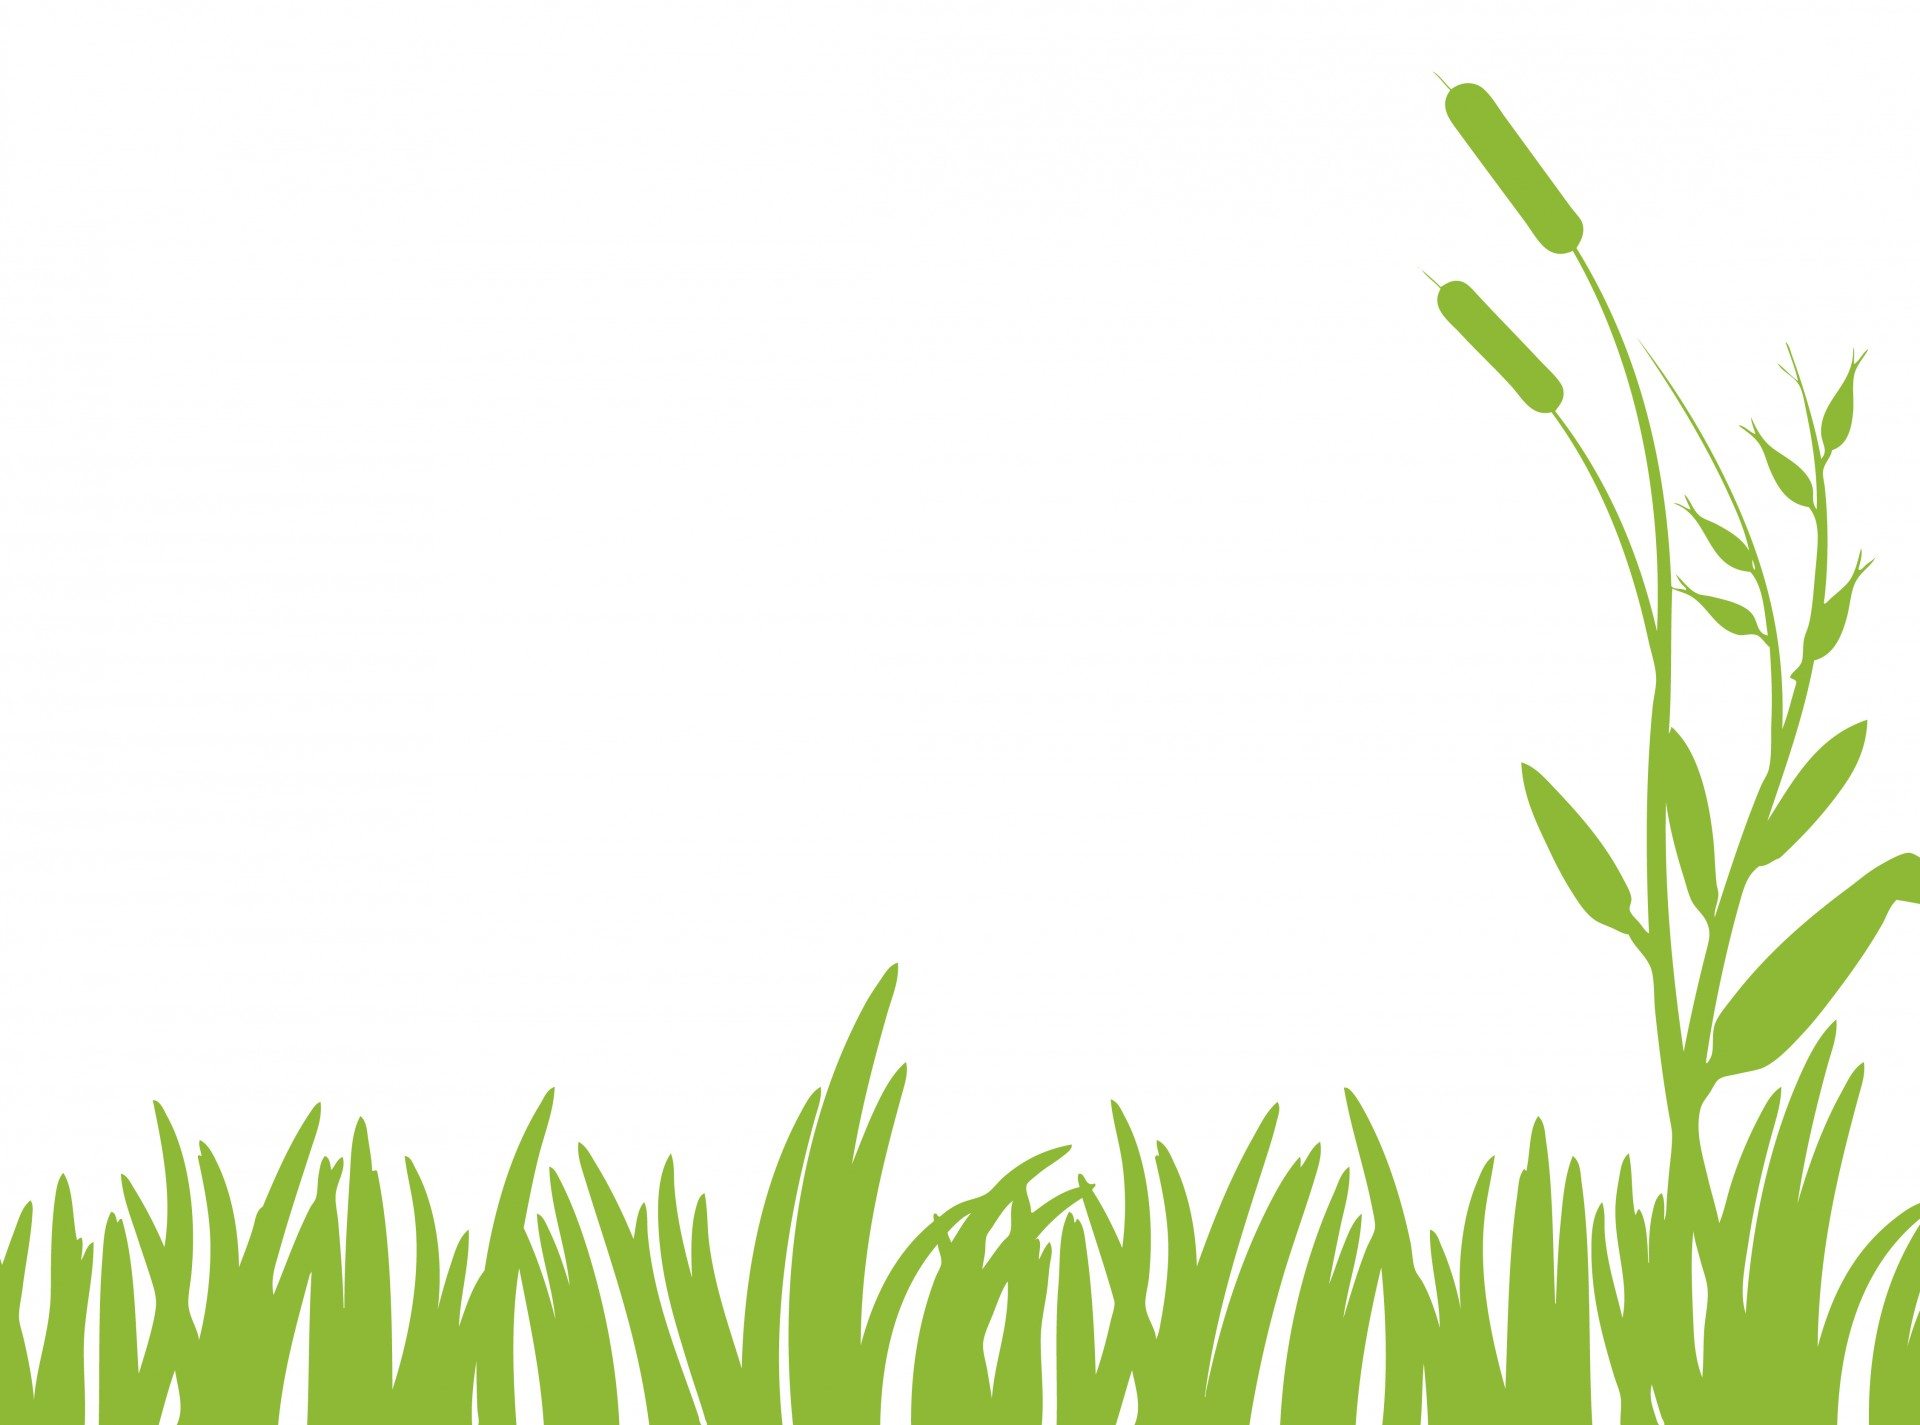 hight resolution of green grass clipart free stock photo public domain pictures 2